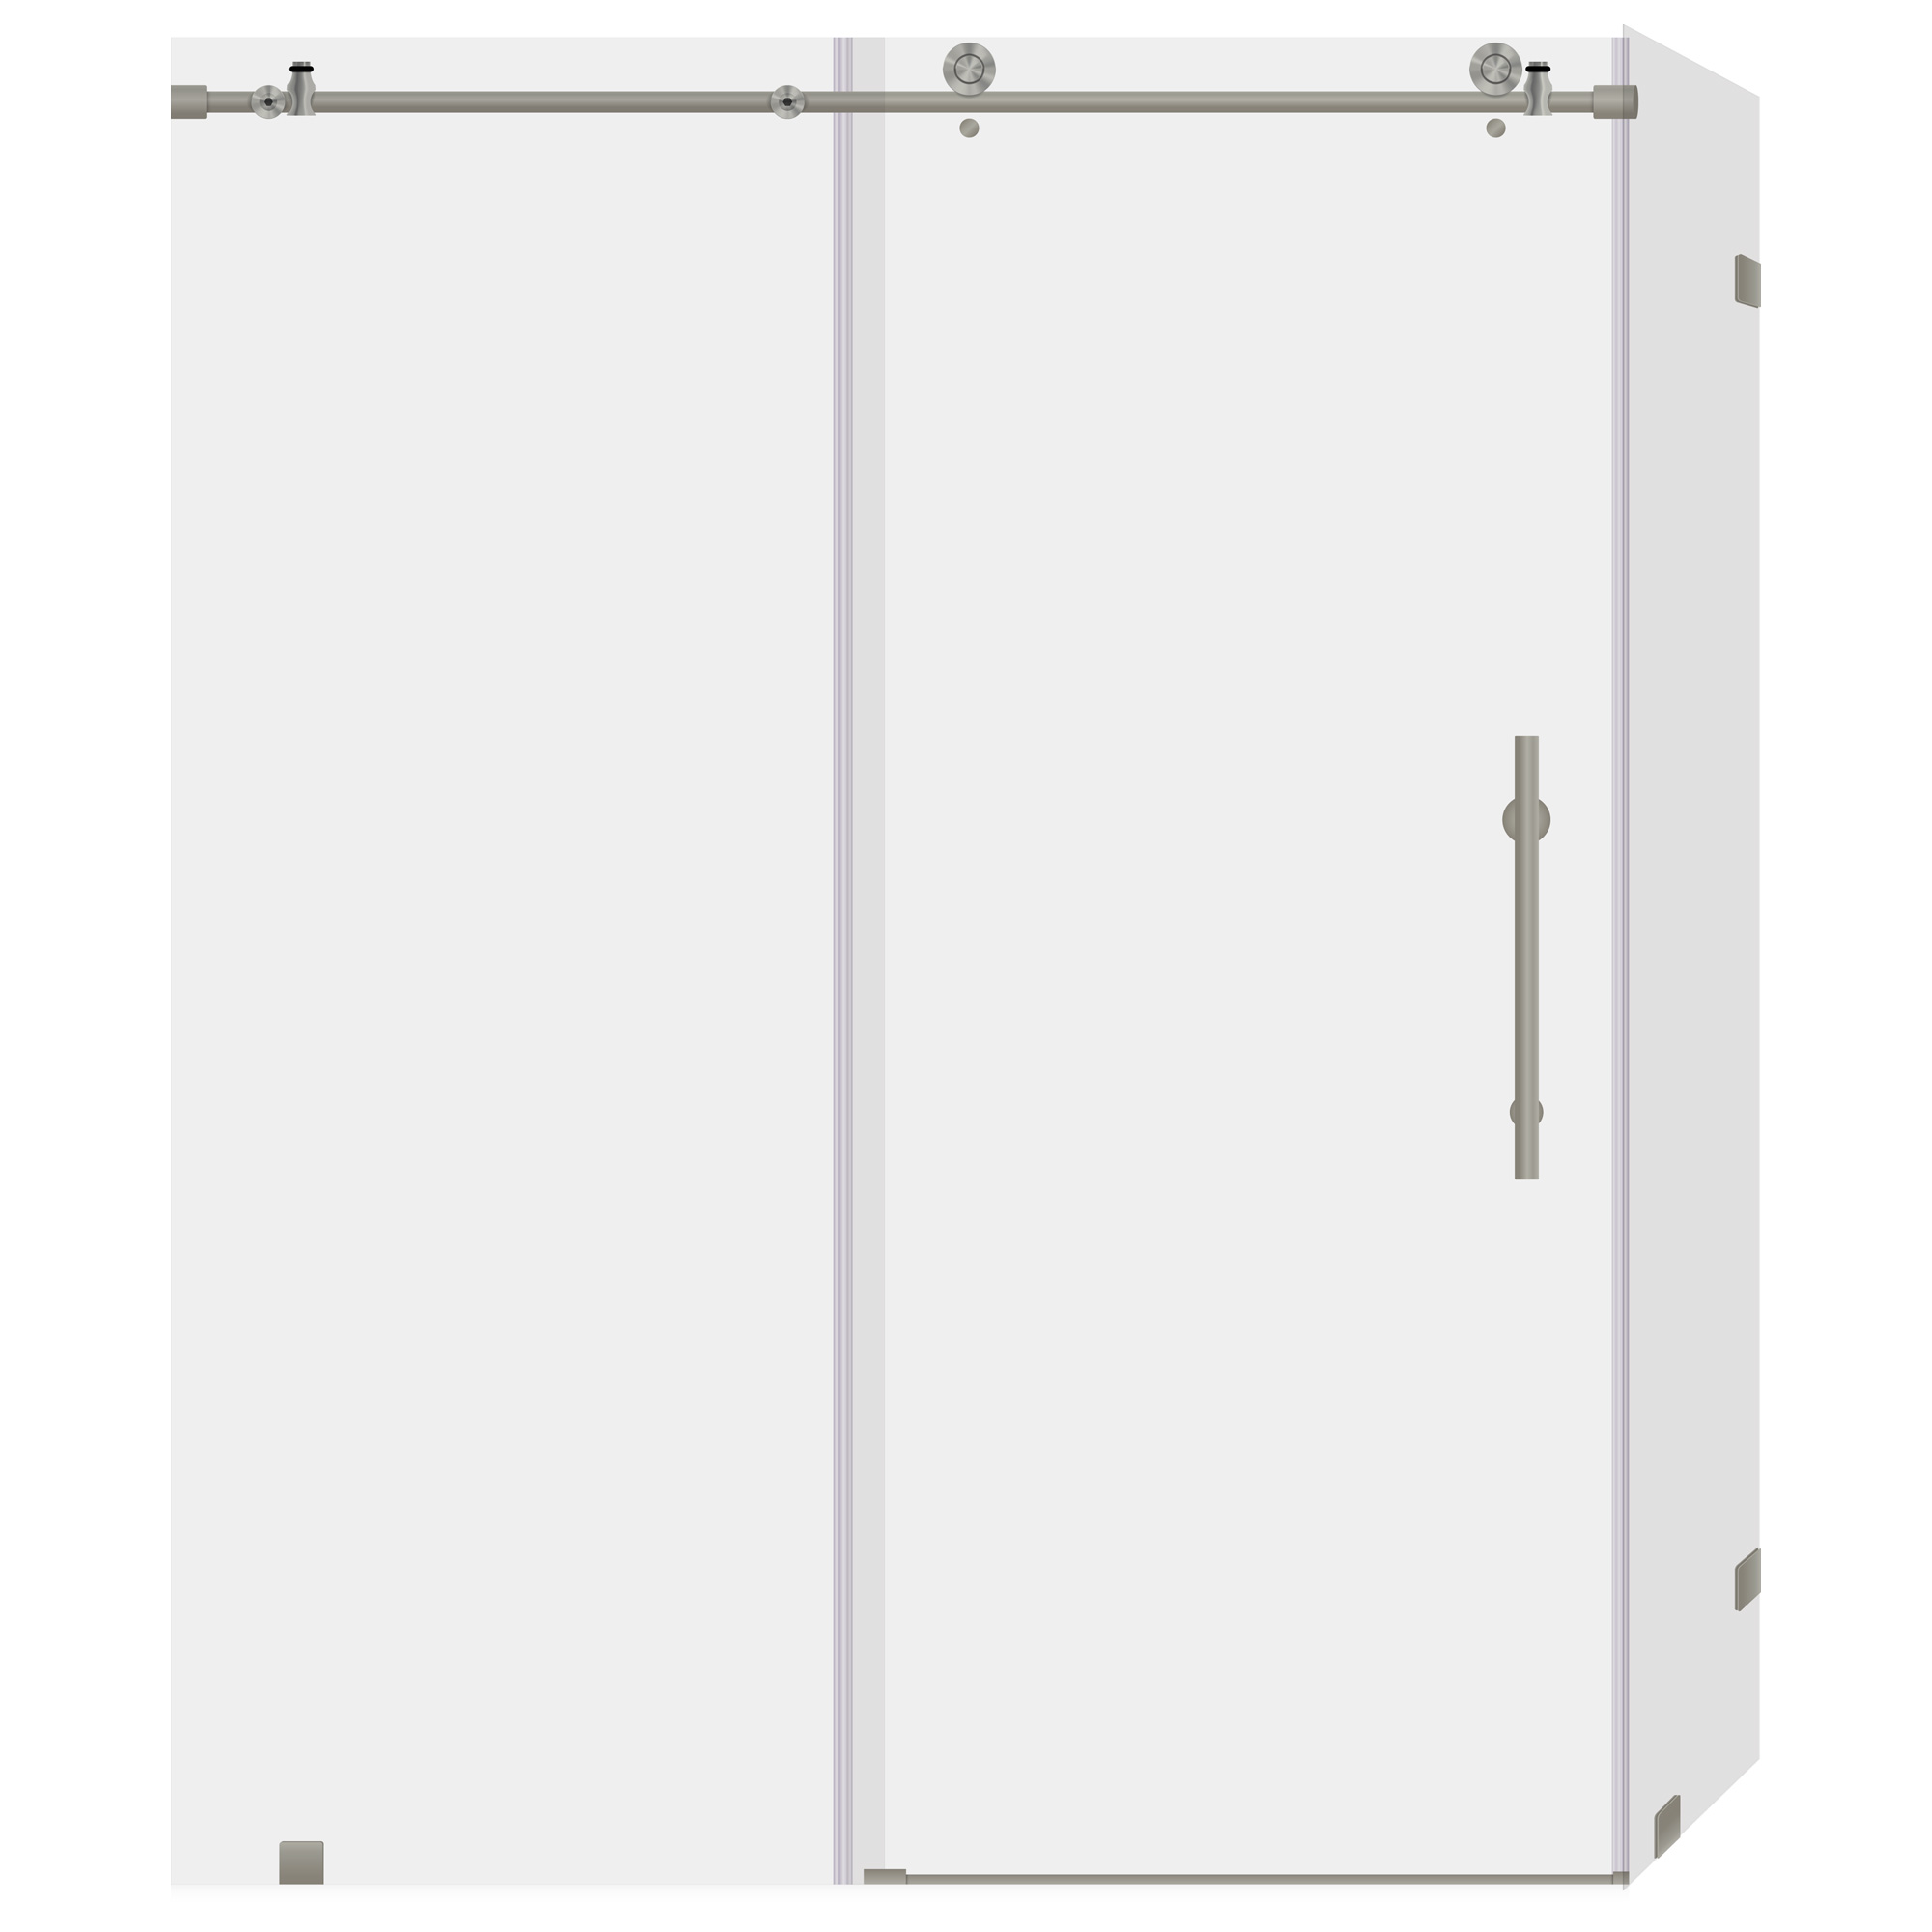 Lesscare clear glass shower door ultra b 44 48 wide x 76 high chrome - 44 48 W X 76 H X 34 5d Shower Enclosure With Sliding Door Chrome Ultra C Lbsdc4876 B Lbsec34576 Cb By Lesscare